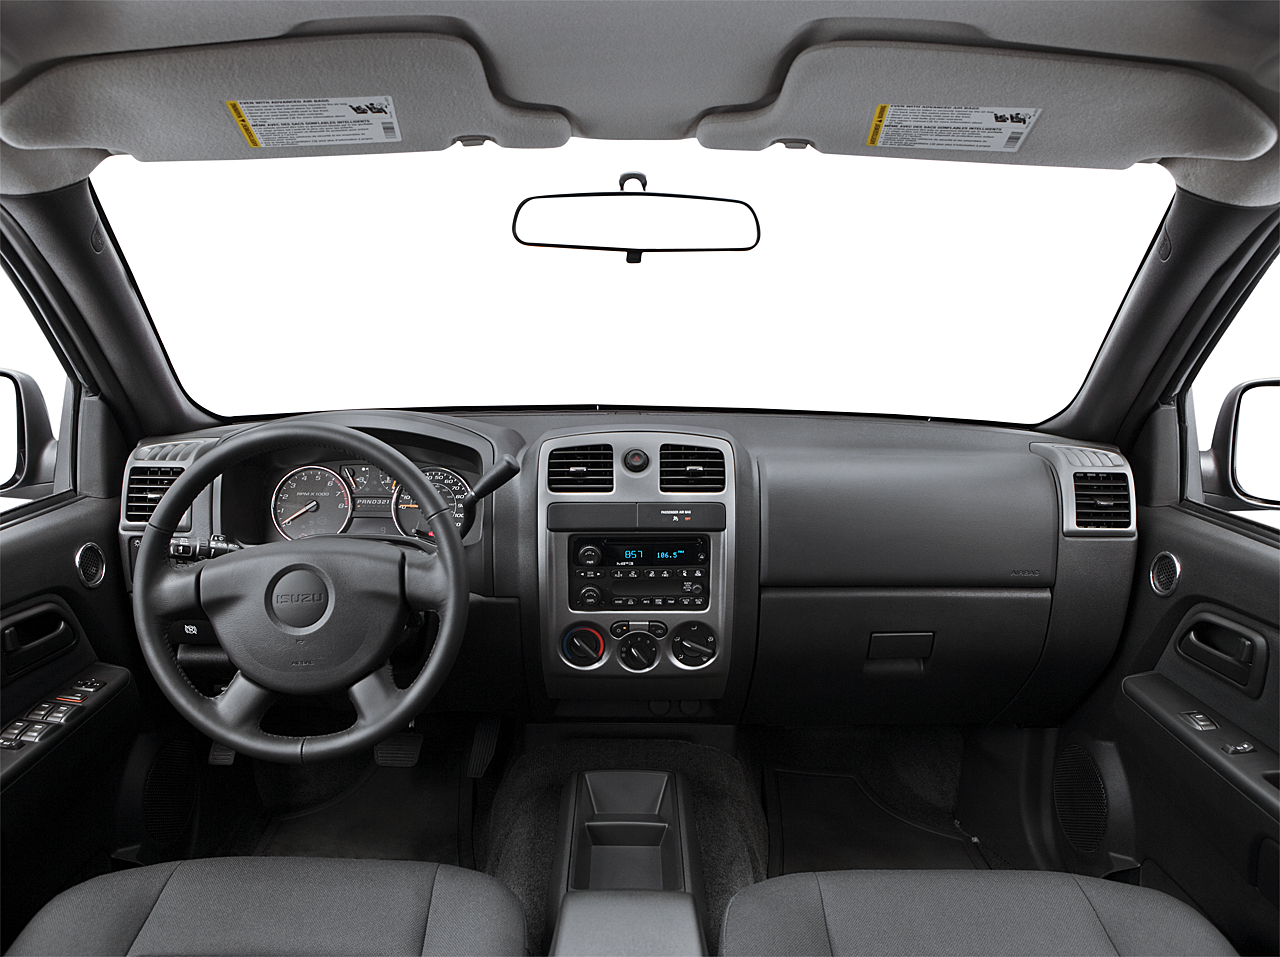 hight resolution of 2007 isuzu i370 ls centered wide dash shot